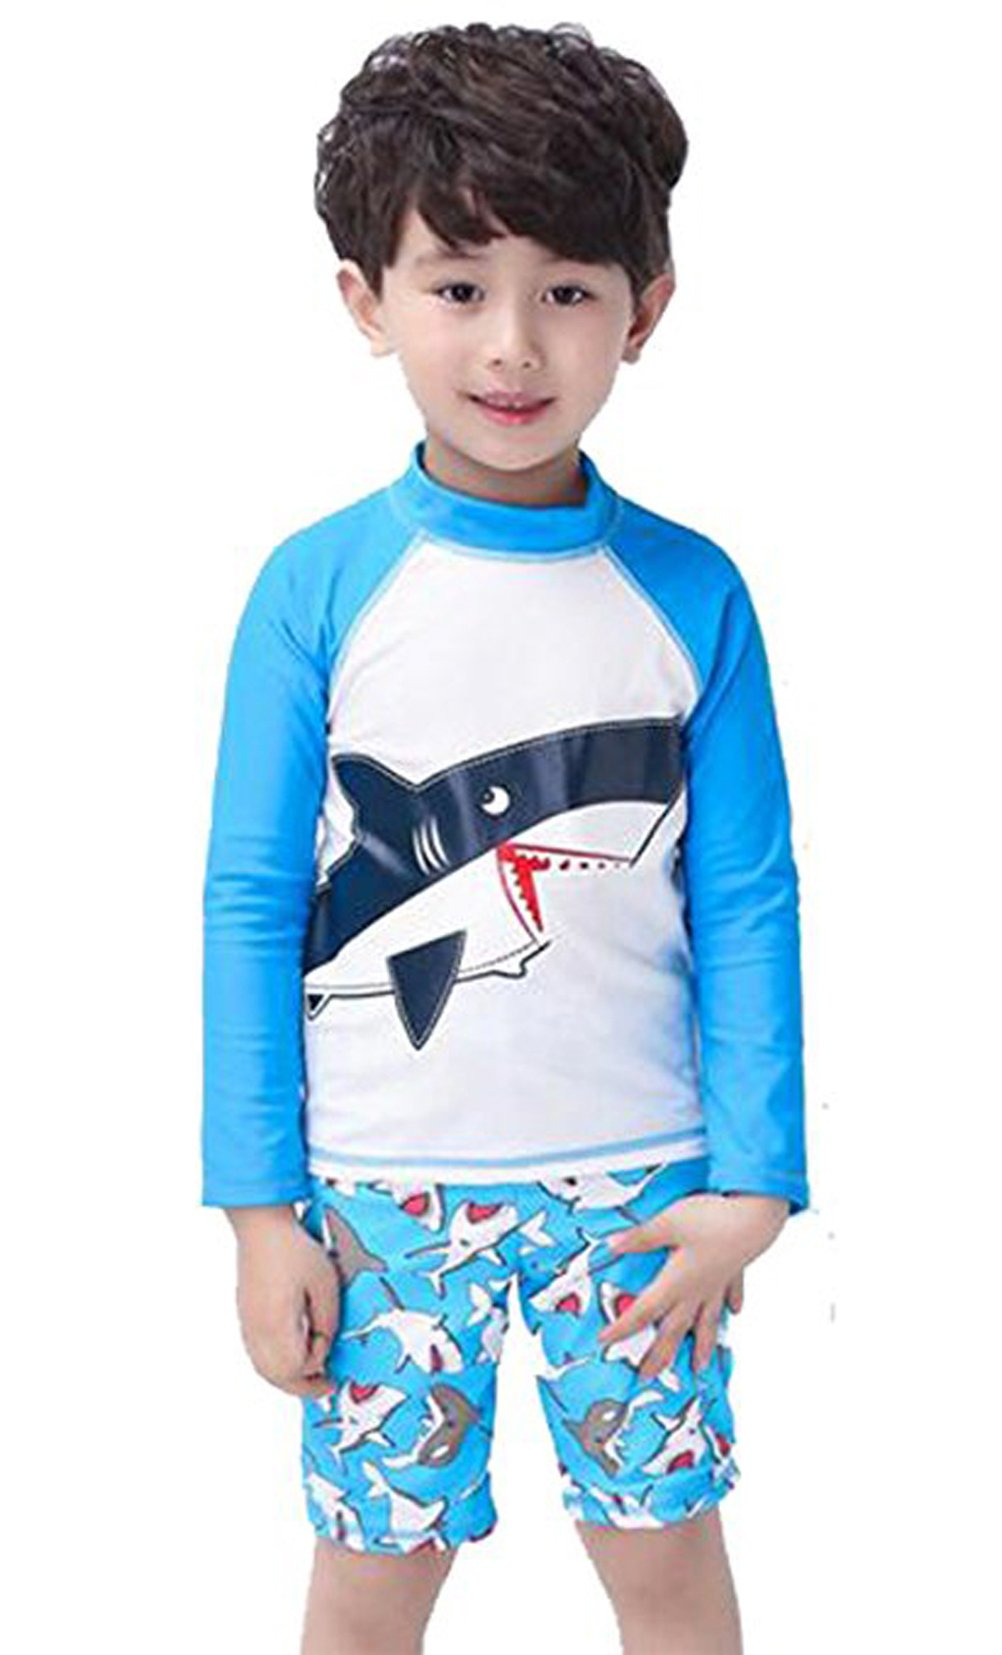 Baby Boys Kids Long Sleeve UV Sun Protection Rash Guards Swimsuit with Hat(Blue, 2-3T(Height:35''-39'')(Weight:22-33lb)) by Yober